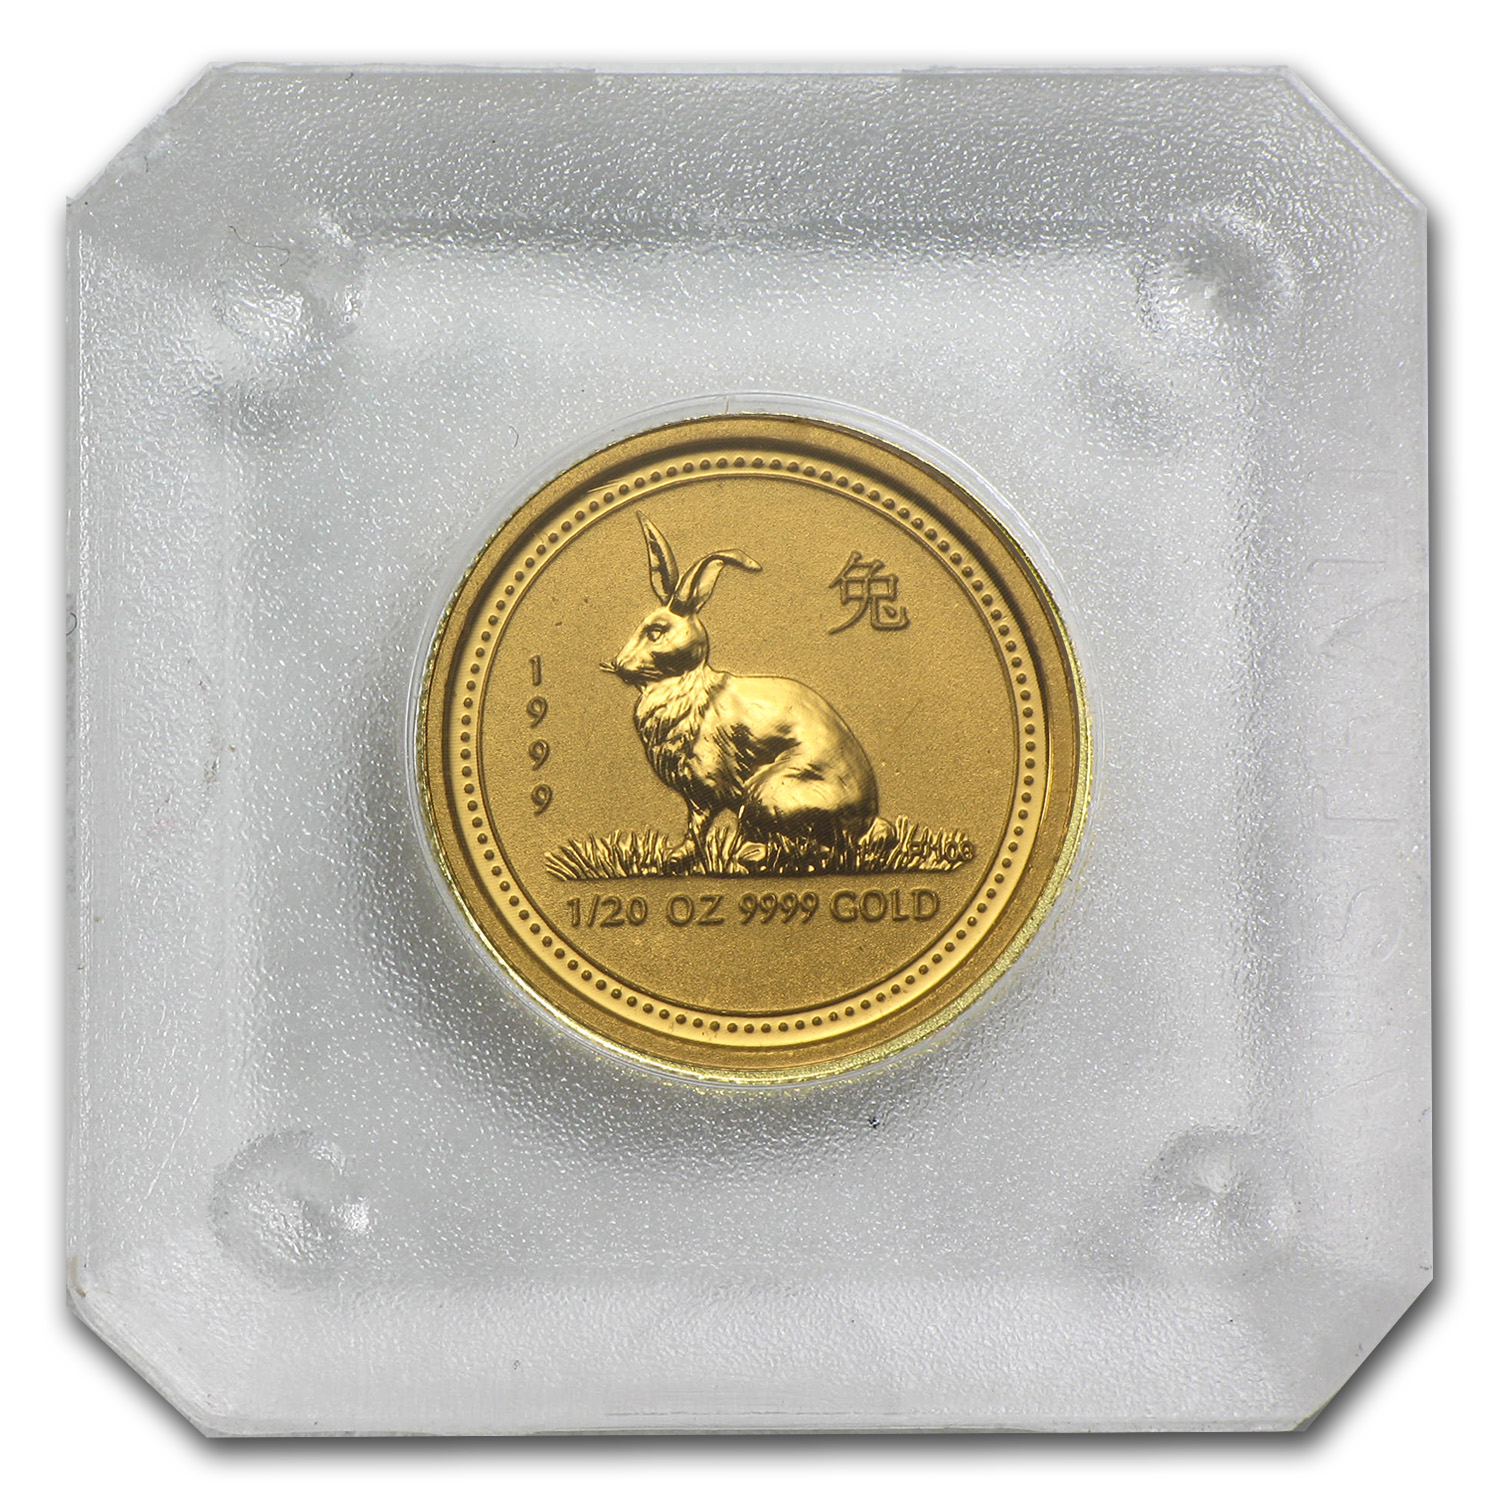 1999 1/20 oz Gold Lunar Year of the Rabbit BU (Series I)